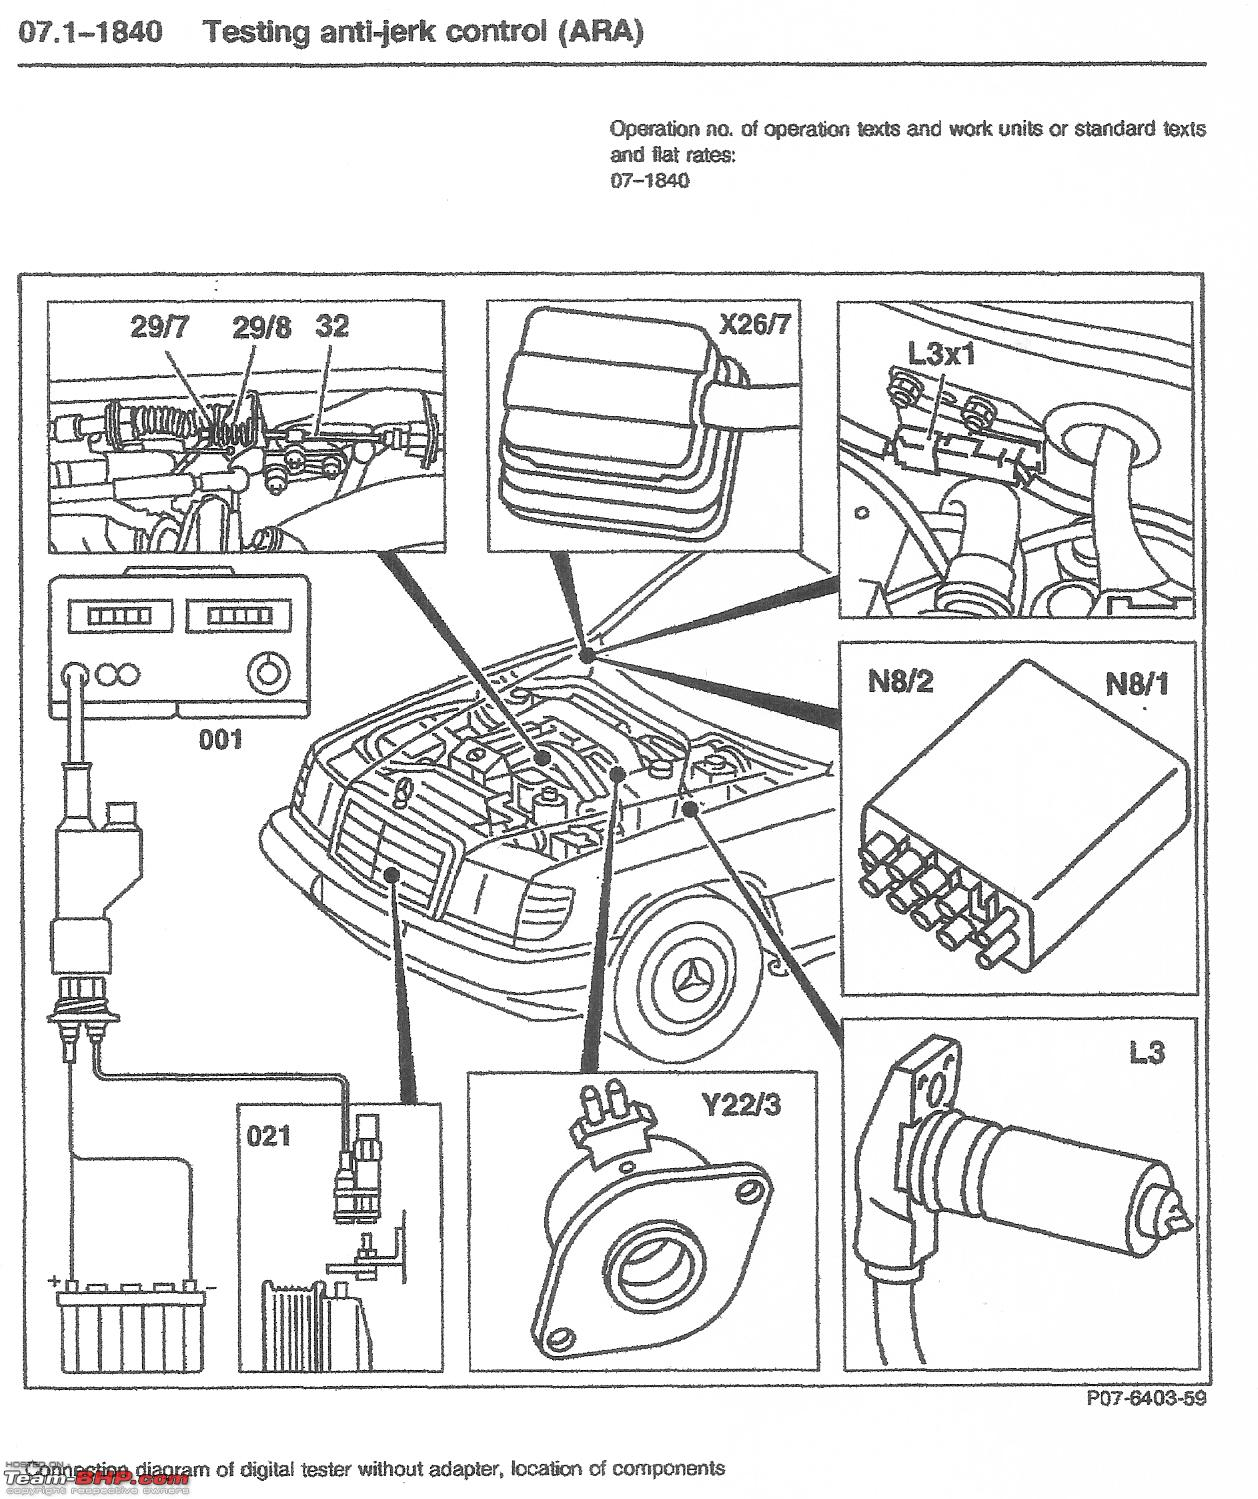 hight resolution of mercedes fuse type wiring diagram mercedes auto wiring 1977 ford e 350 super duty wiring diagram 2008 f350 super duty wiring diagram